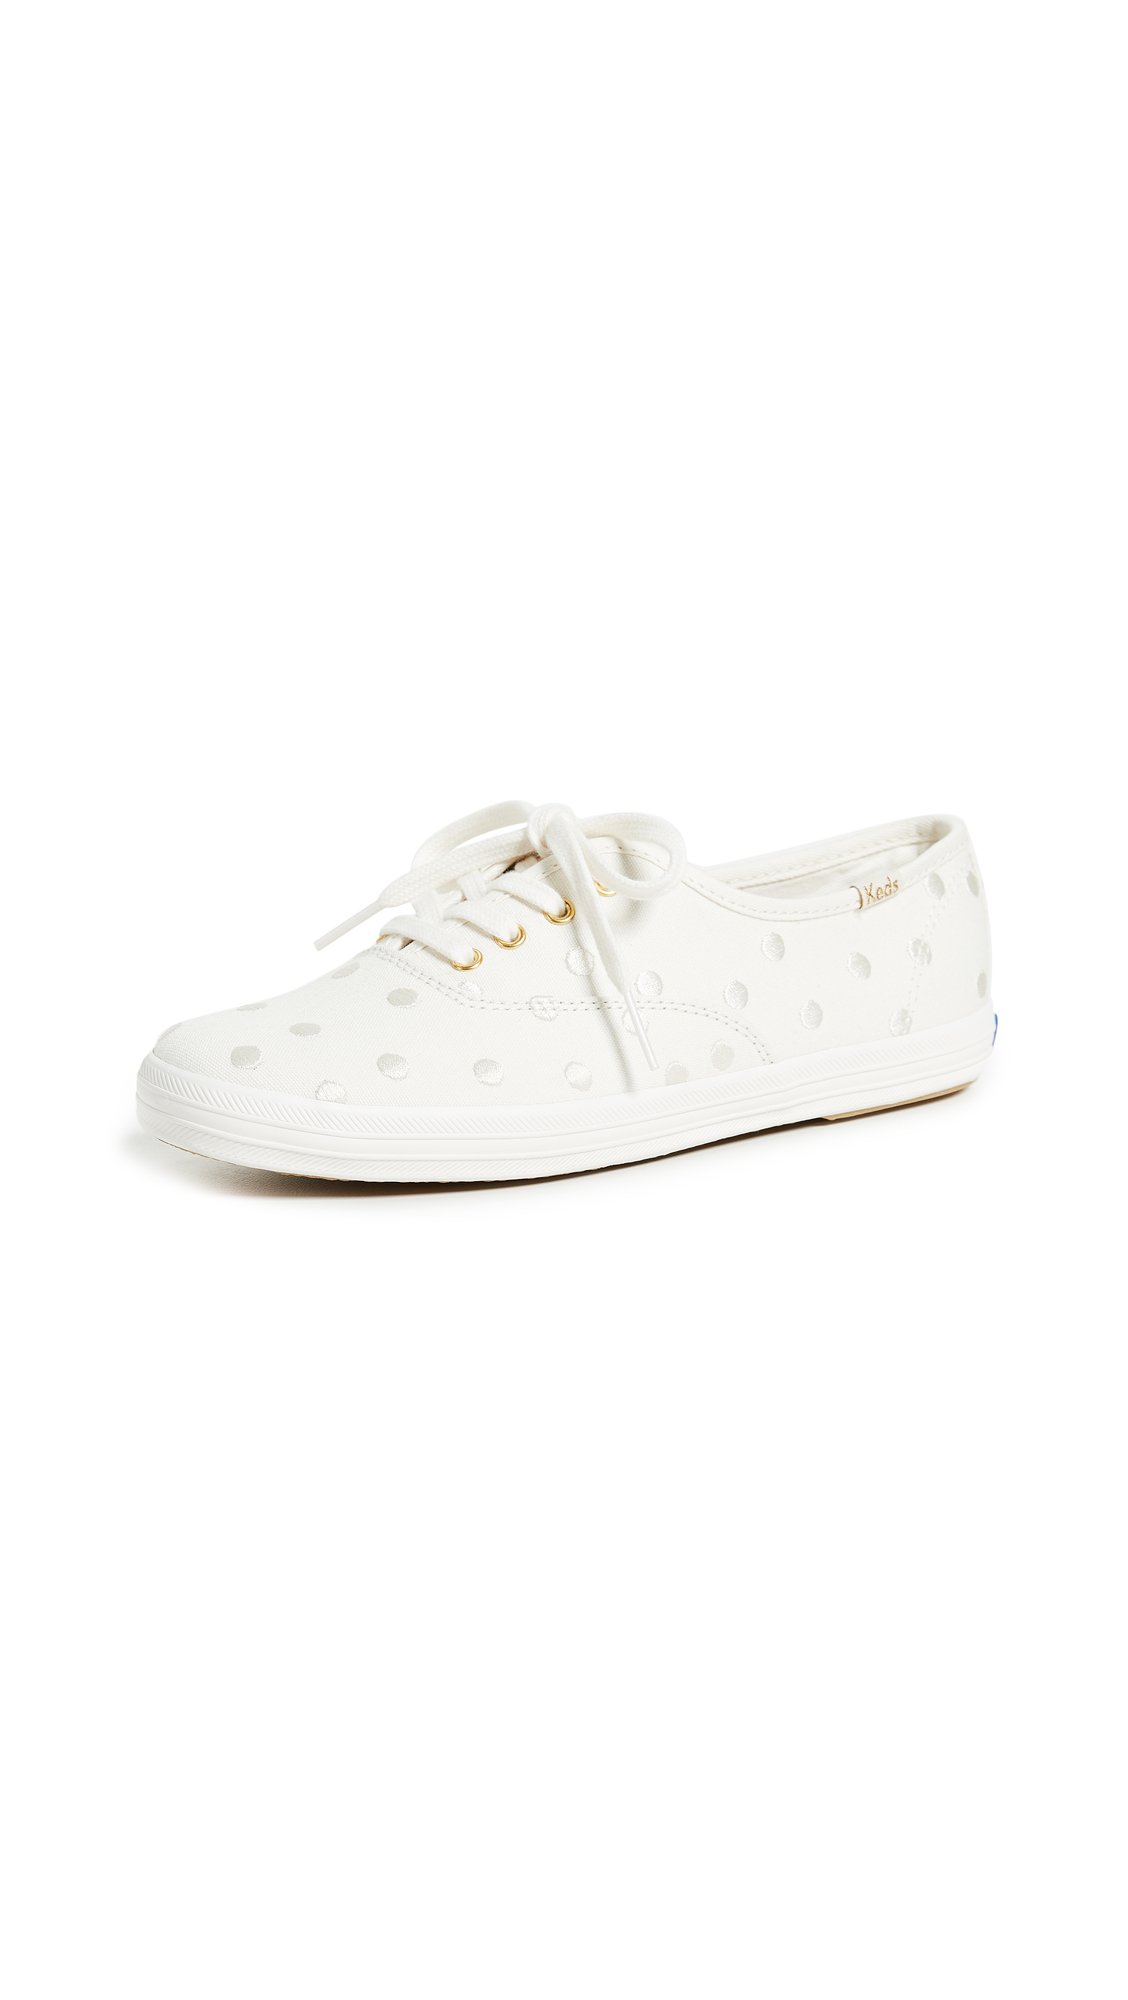 6fcde94bd61e5 Galleon - Keds Women s X Kate Spade New York Dancing Dot Champion Sneakers